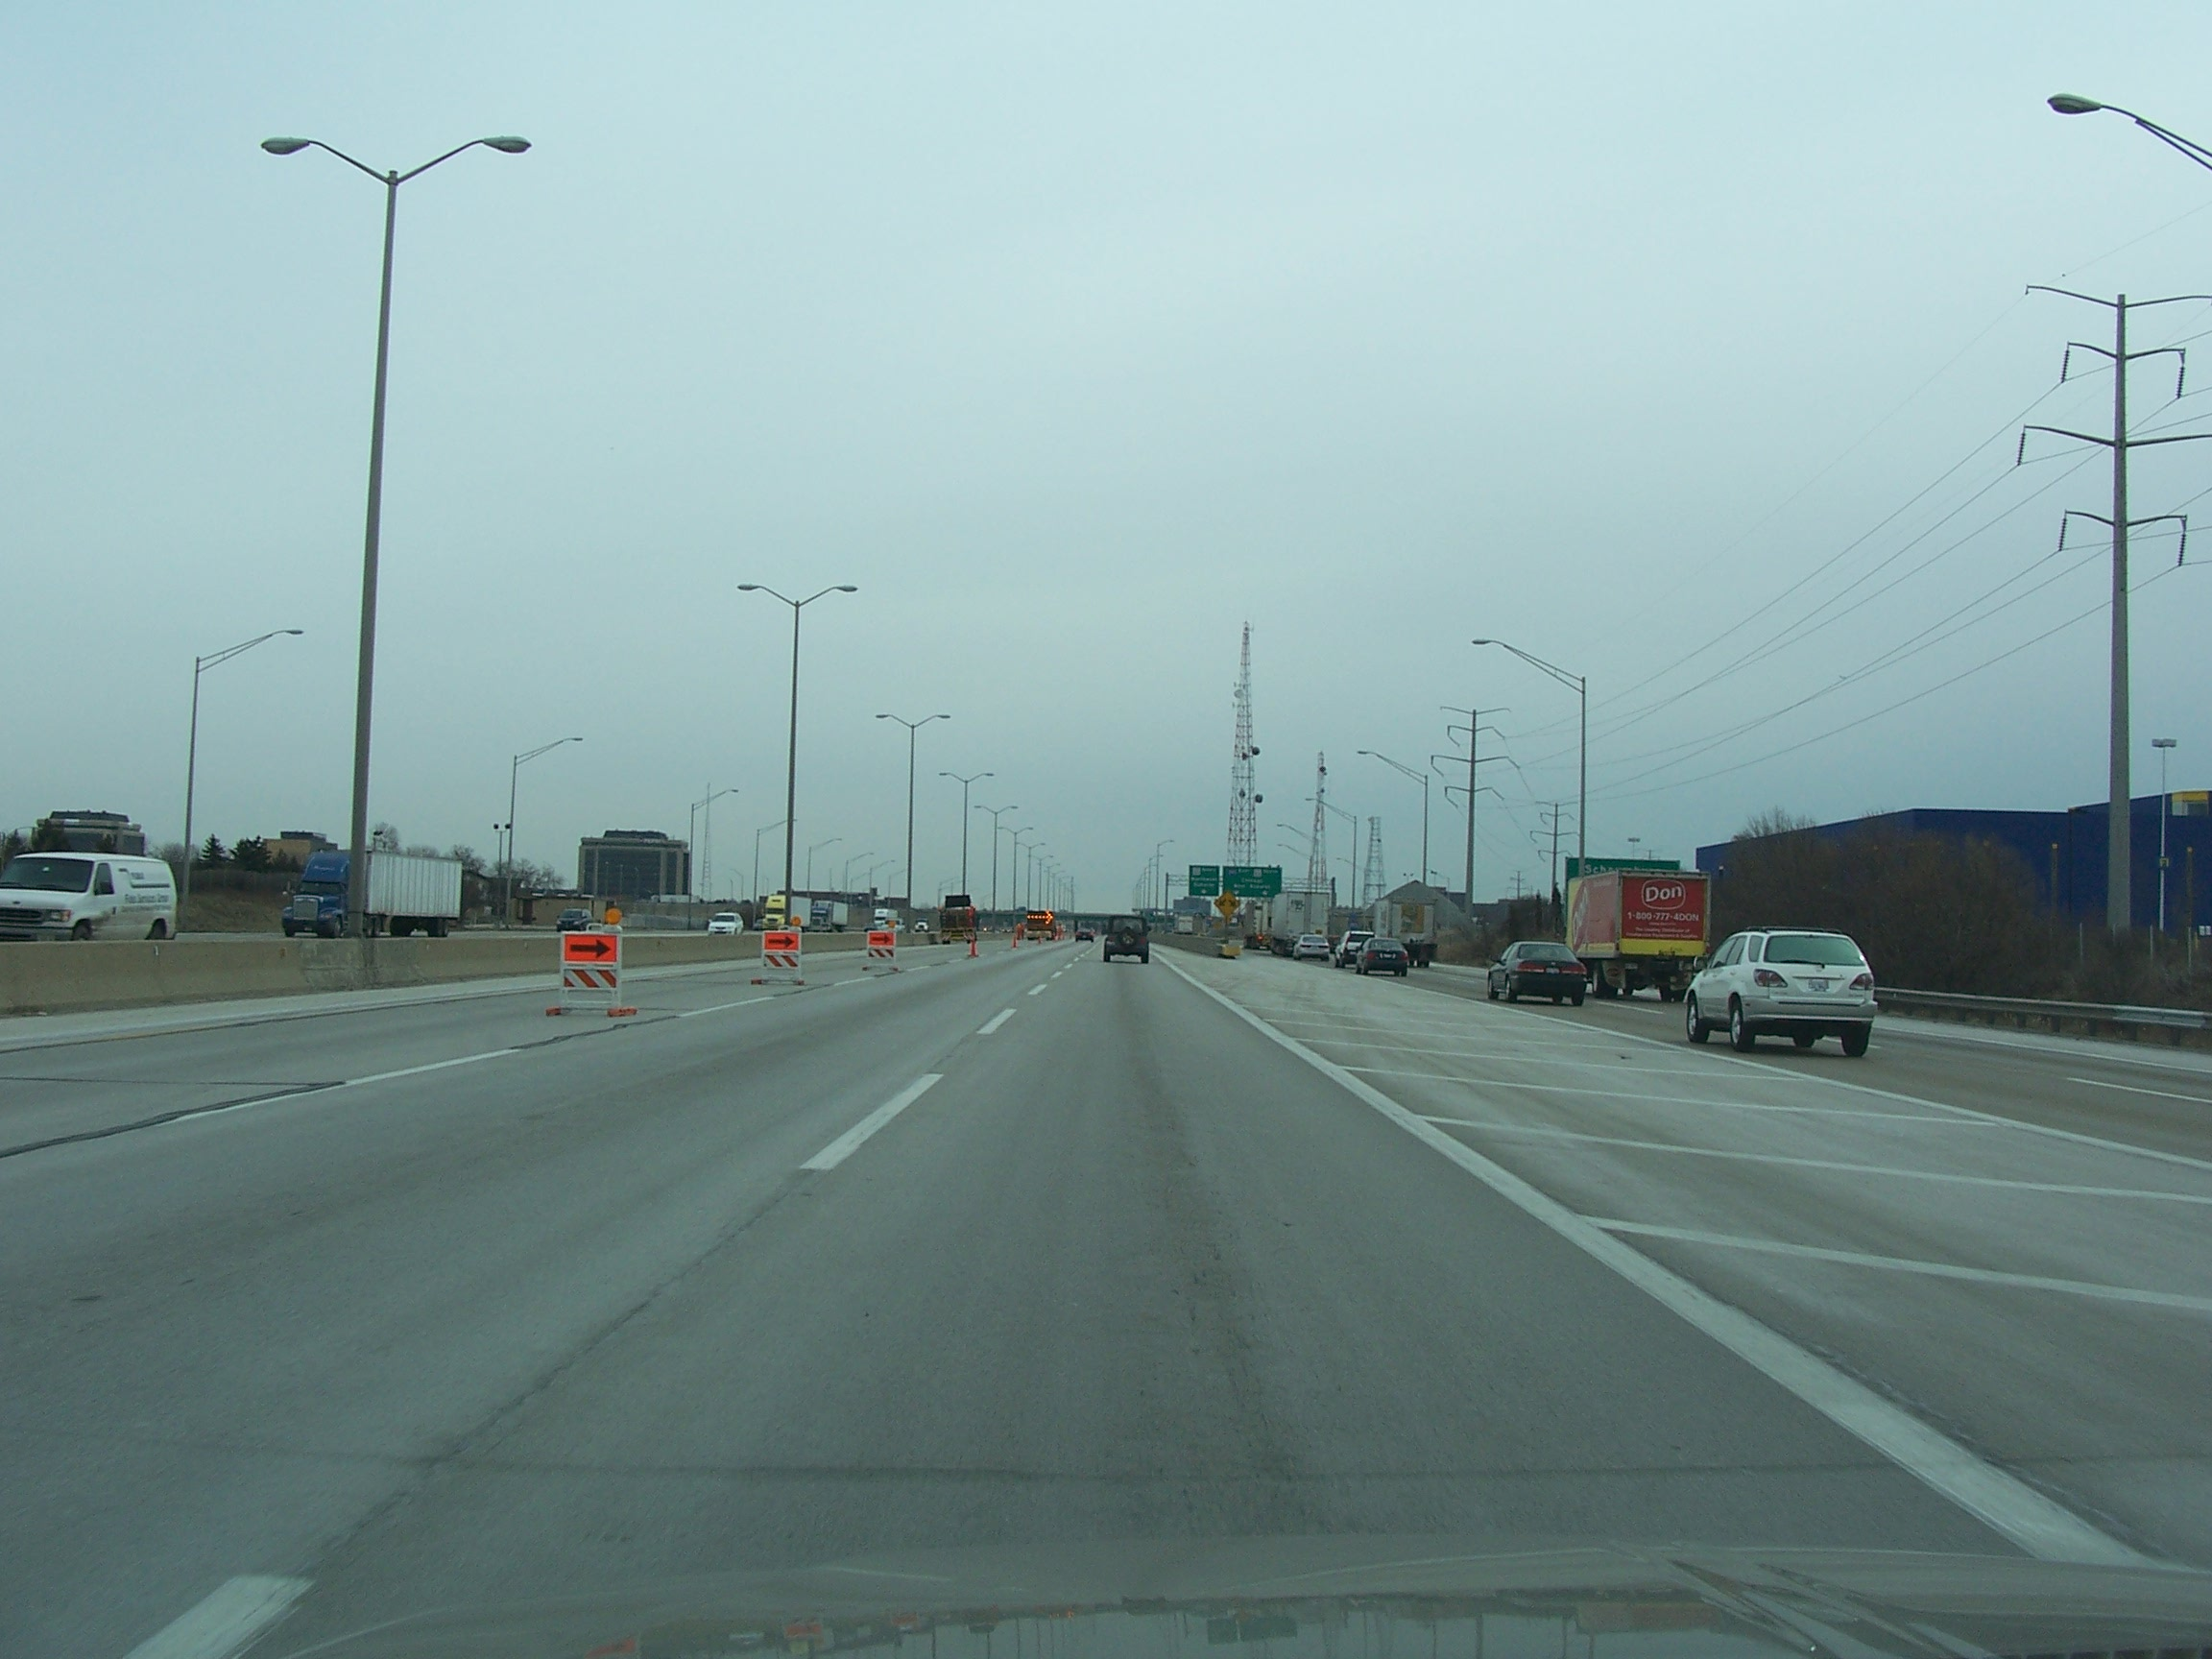 File:Schaumburg, Illinois - Northwest Tollway (I-90).jpg ...